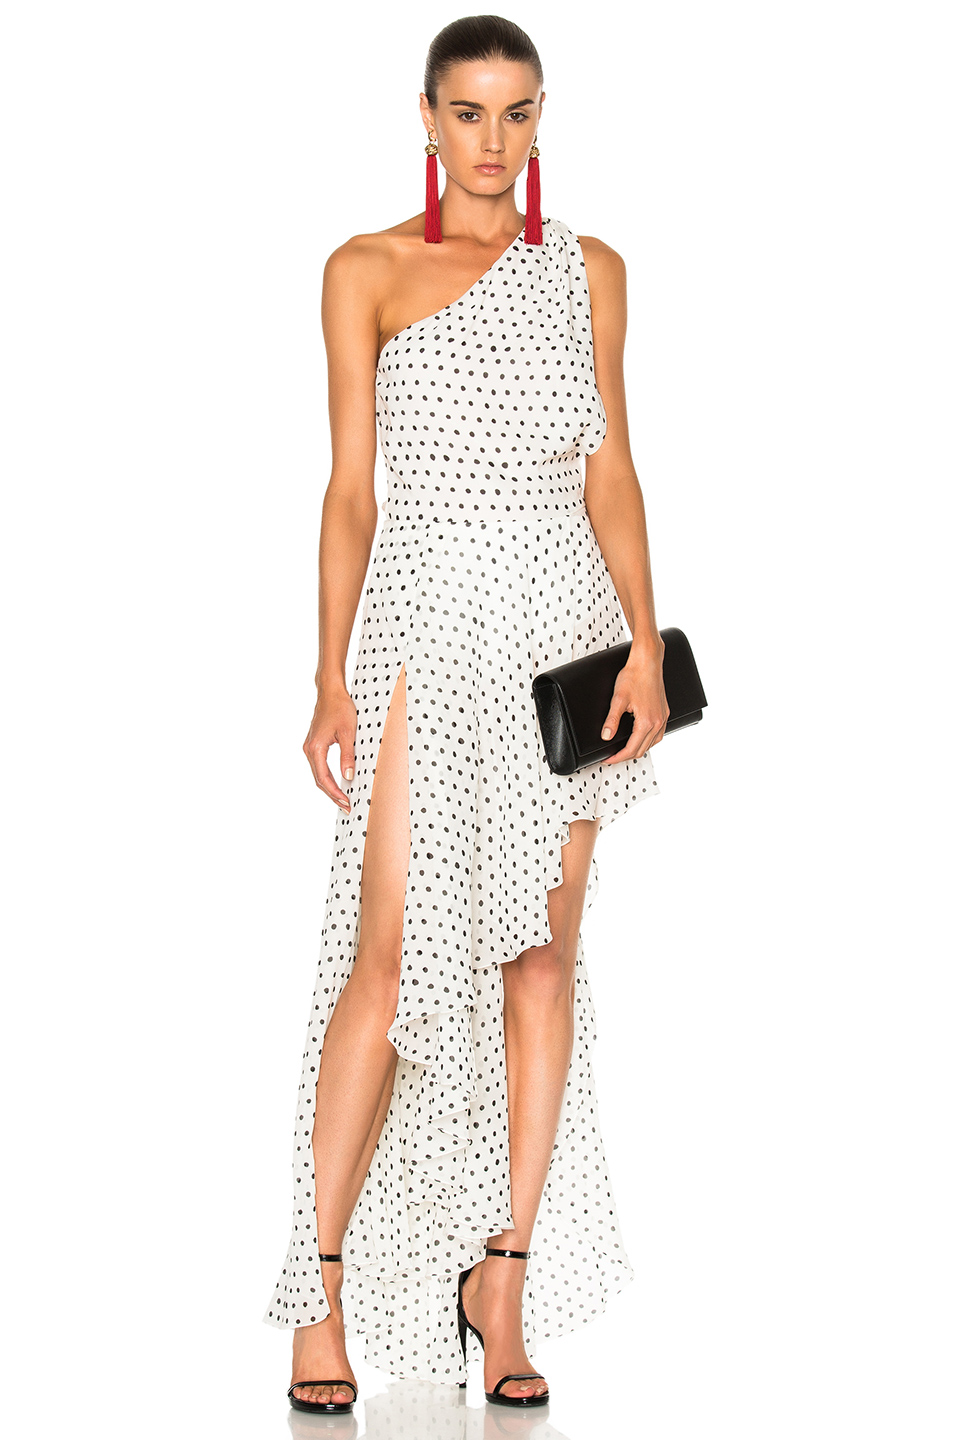 Saint Laurent Georgette One Shoulder Asymmetrical Dress in Geometric Print,White